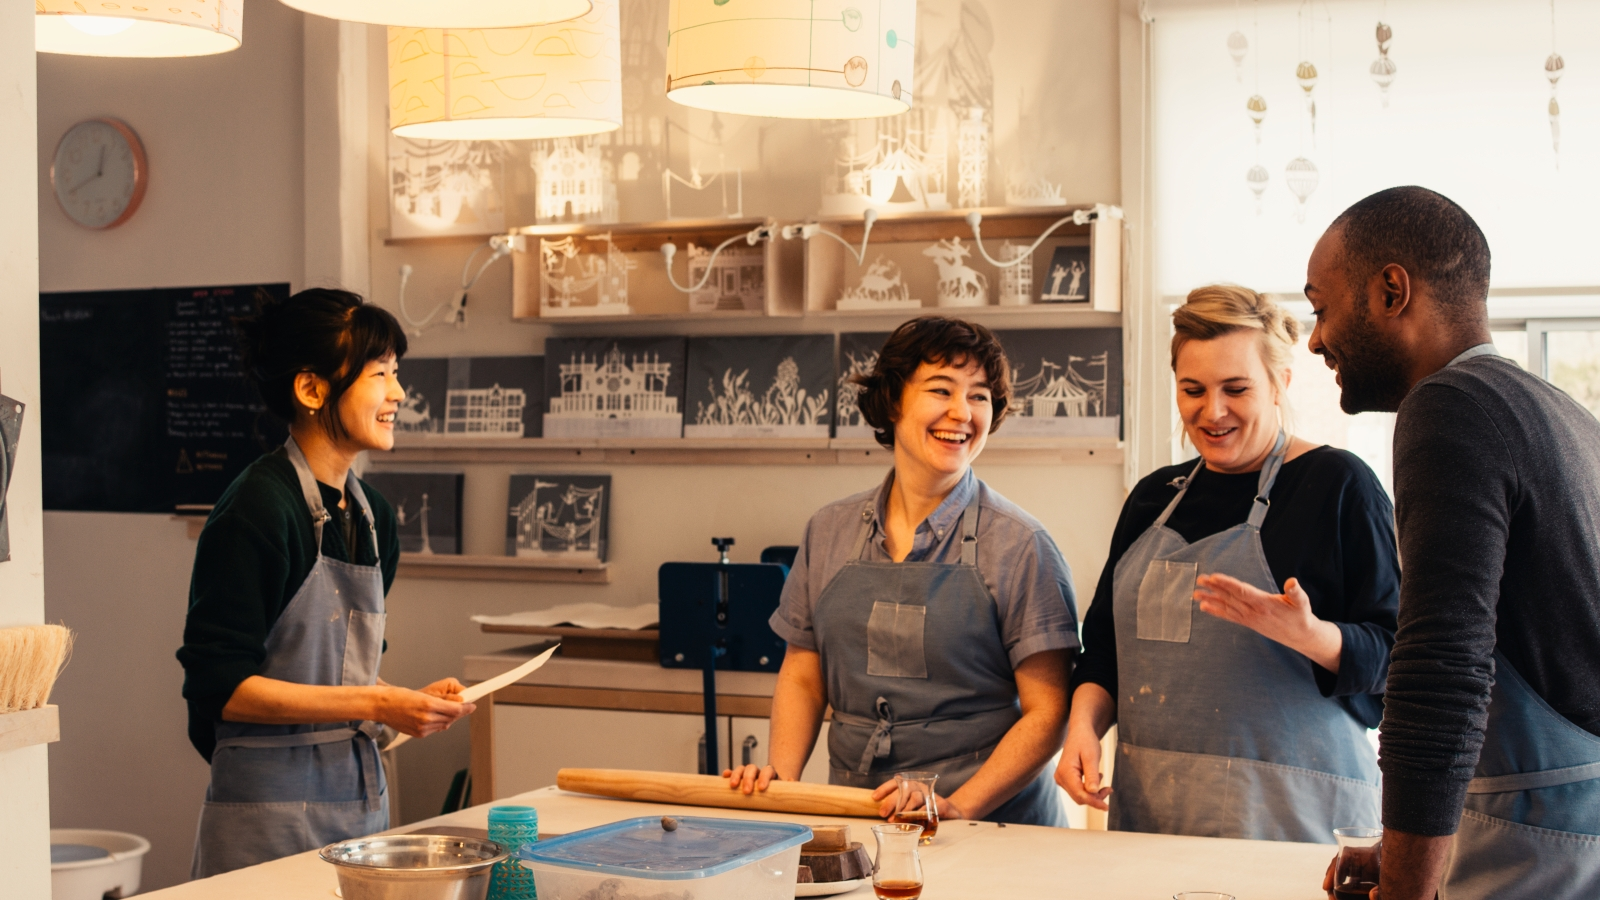 Hosts and Guest laughing in a kitchen around a table.